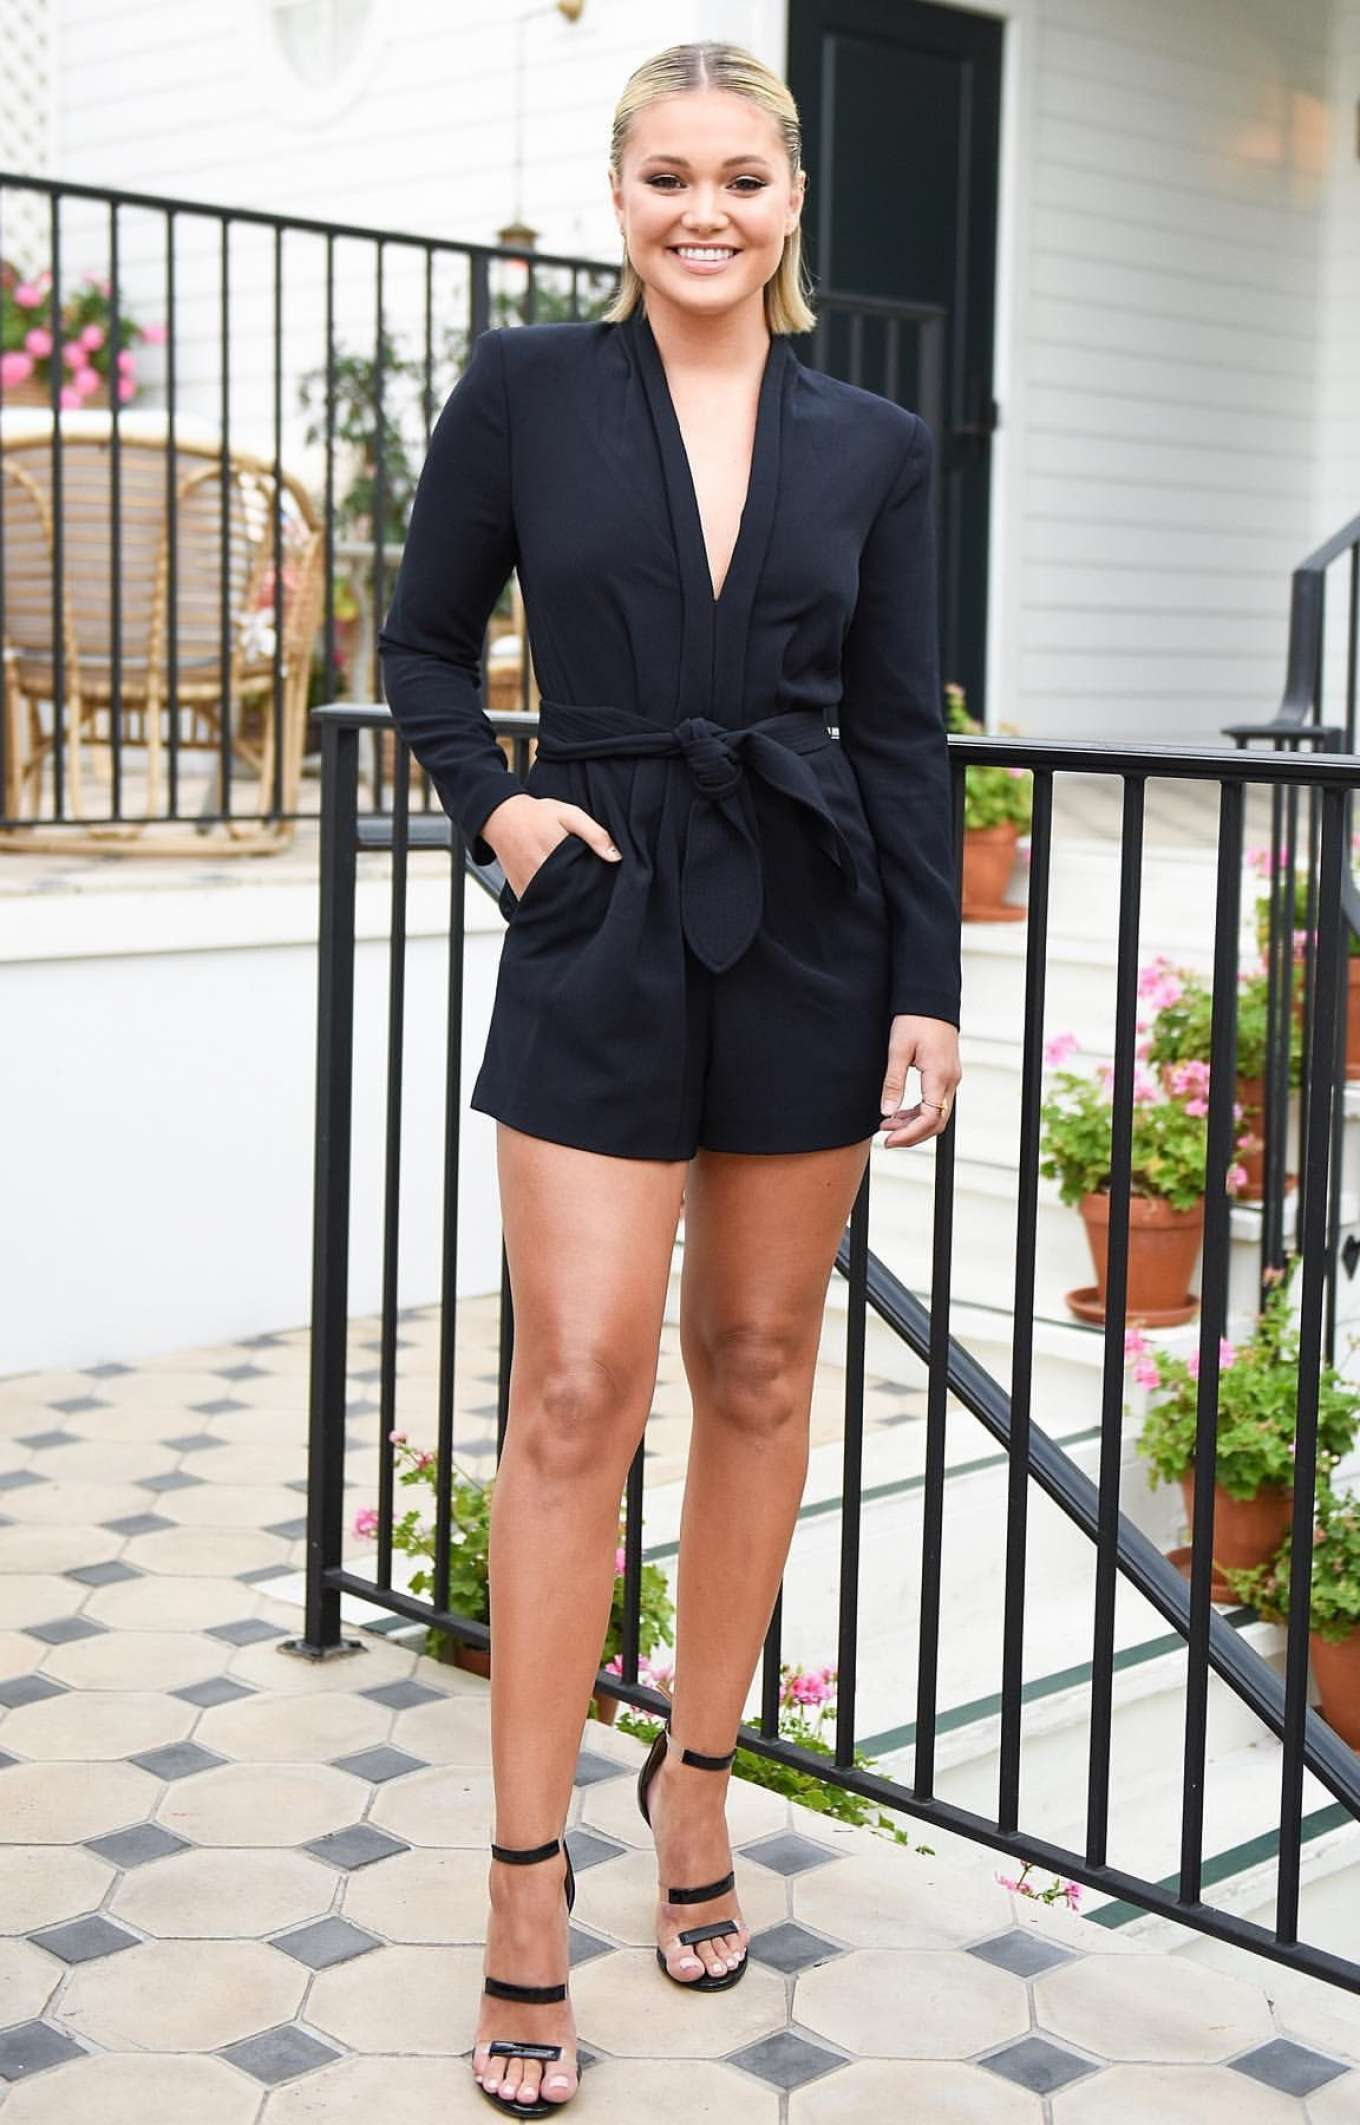 Olivia Holt - Tamara Mellon x A.L.C. Launch Event in West Hollywood